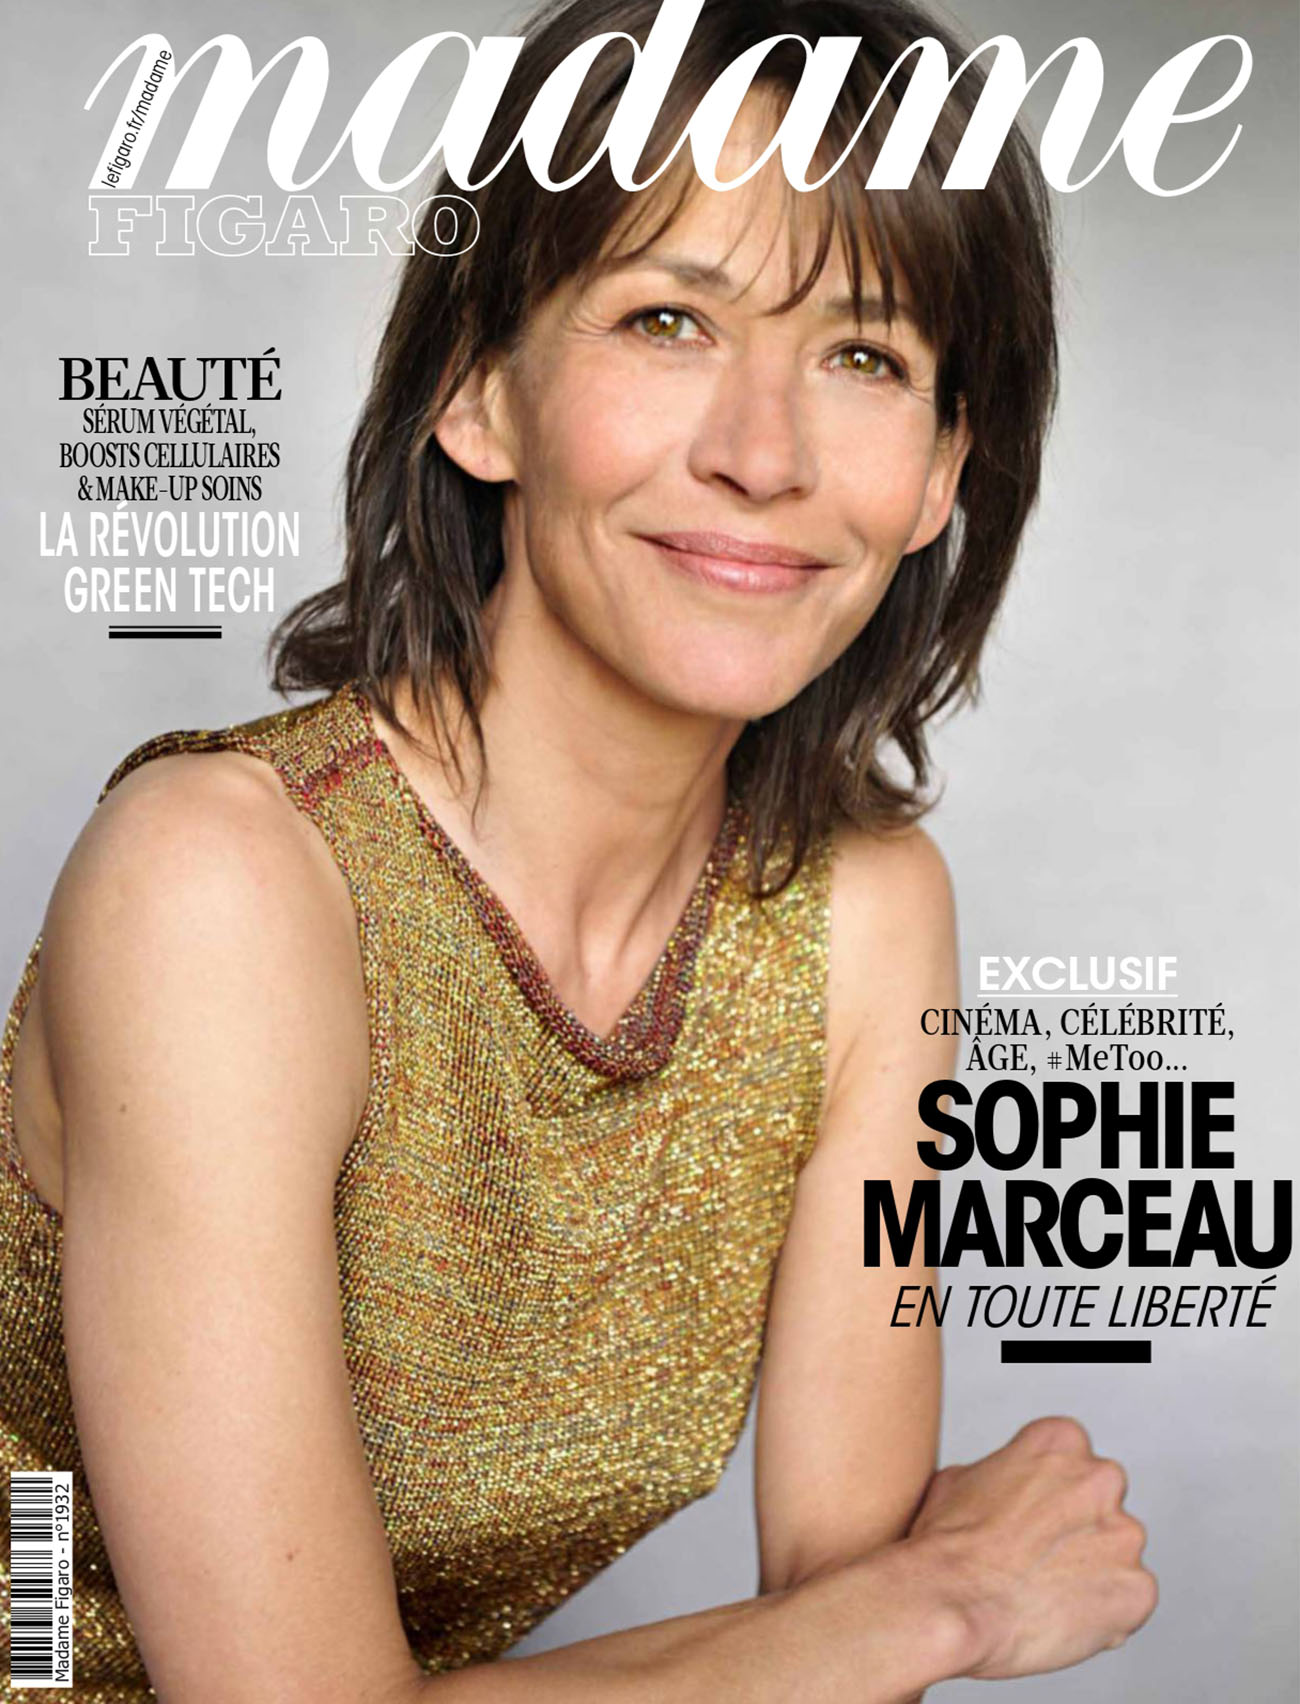 Sophie Marceau covers Madame Figaro September 3rd, 2021 by Elsa Trillat